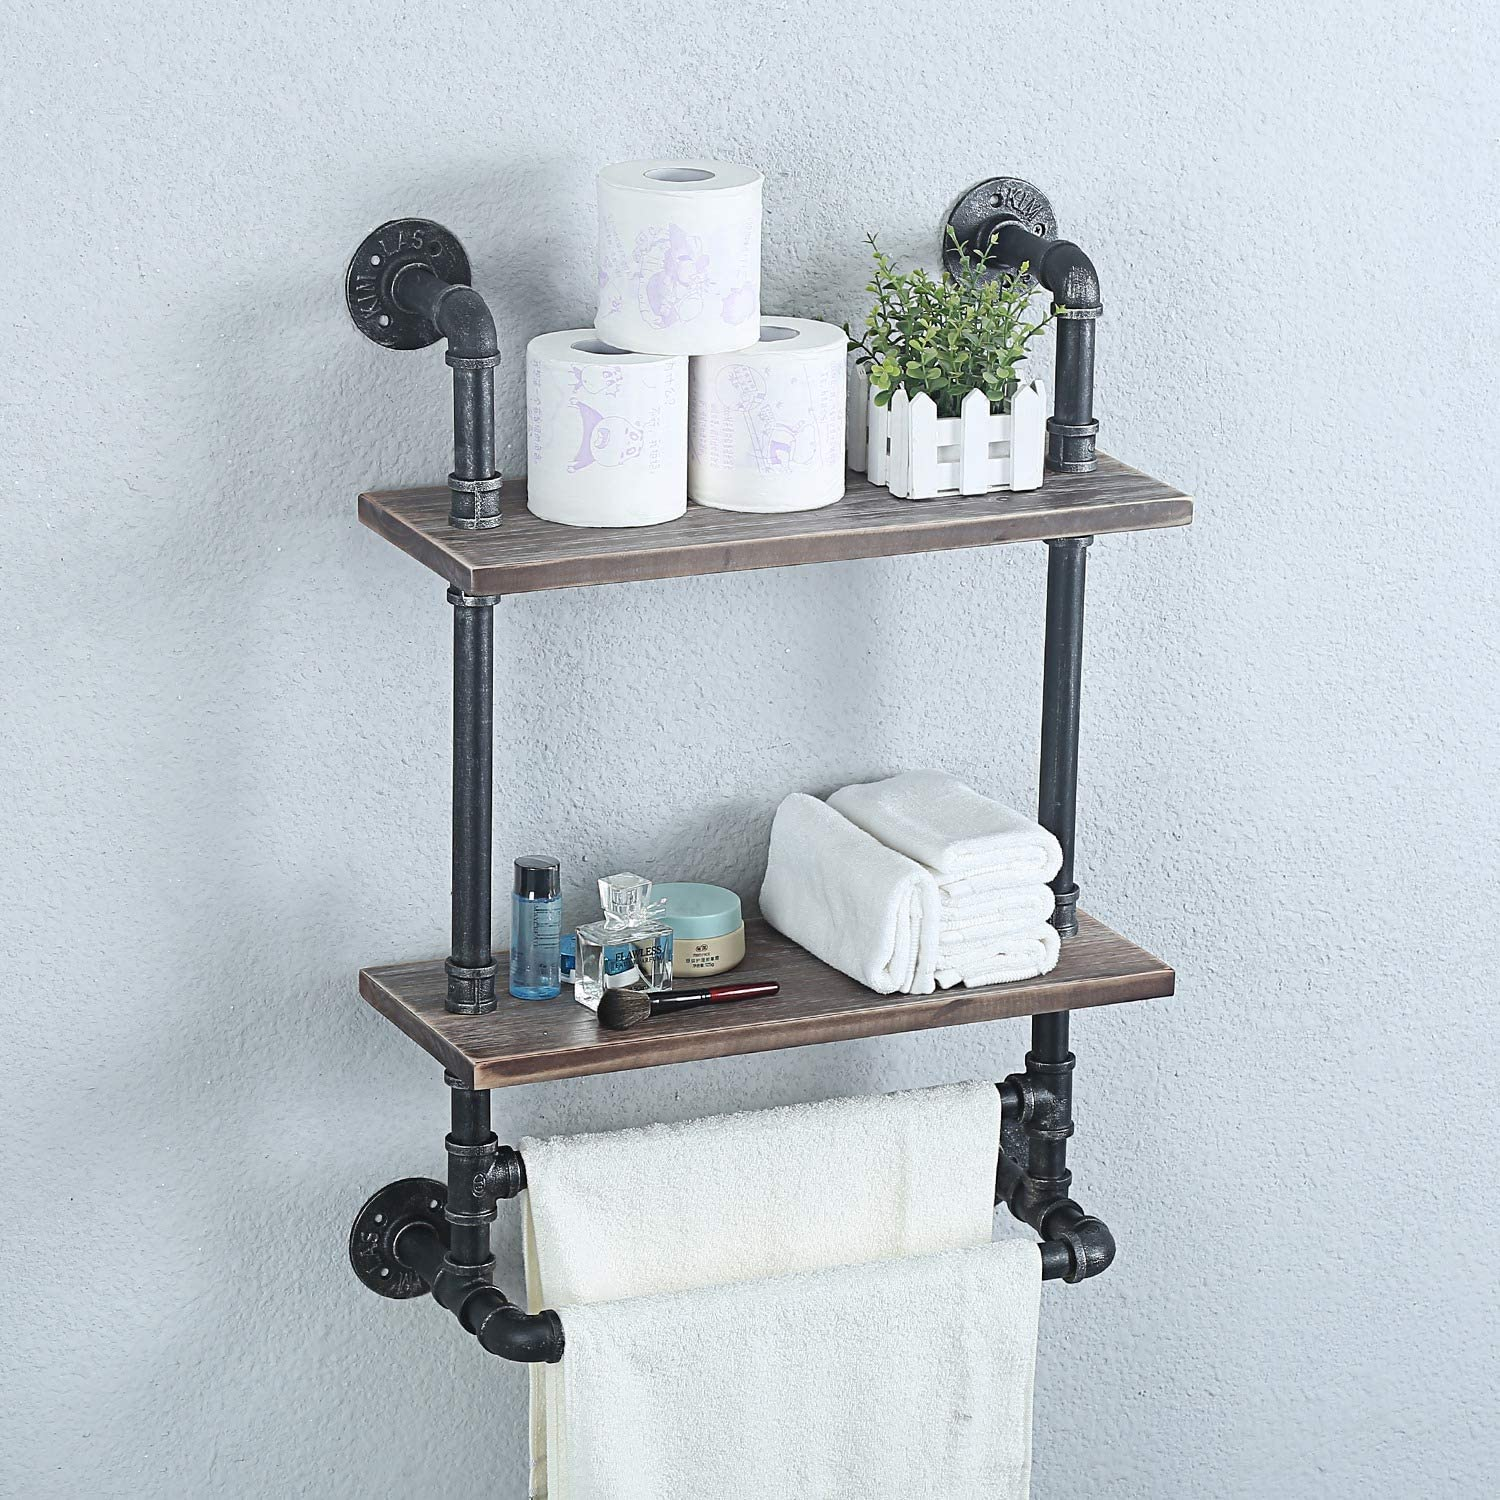 Weven Industrial Pipe Bathroom Shelves Wall Mounted,Metal Floating Shelves Towel Holder,Towel Rack With 2 Towel Bar Wall Shelf Over Toilet,19.7in Rustic Wall Decor Farmhouse